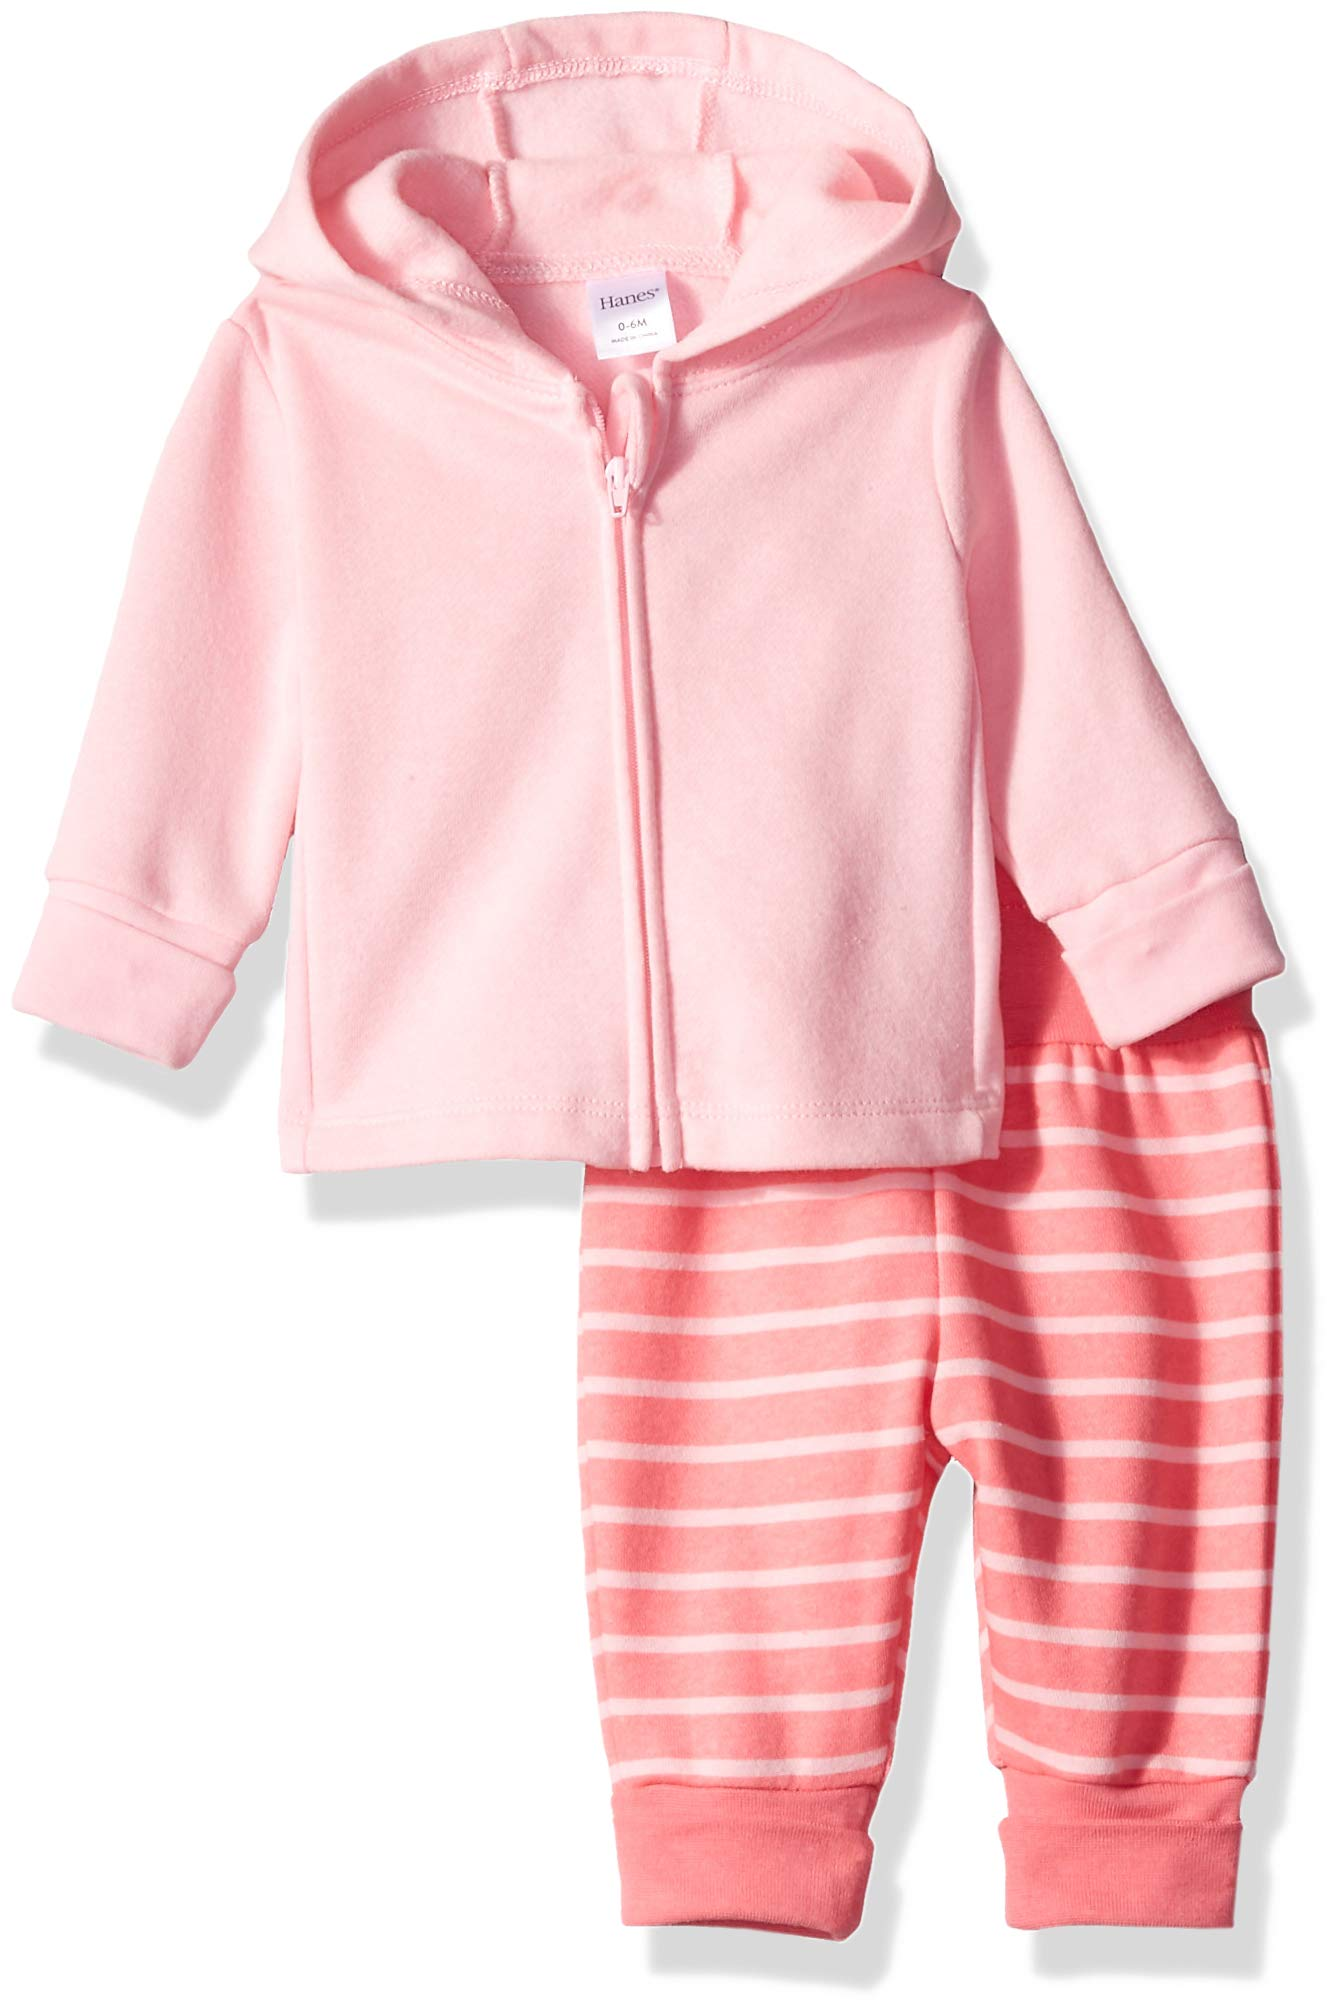 Hanes Ultimate Baby Flexy Adjustable Fit Jogger with Zippin Fleece Hoodie, Pinks, 0-6 Months by Hanes